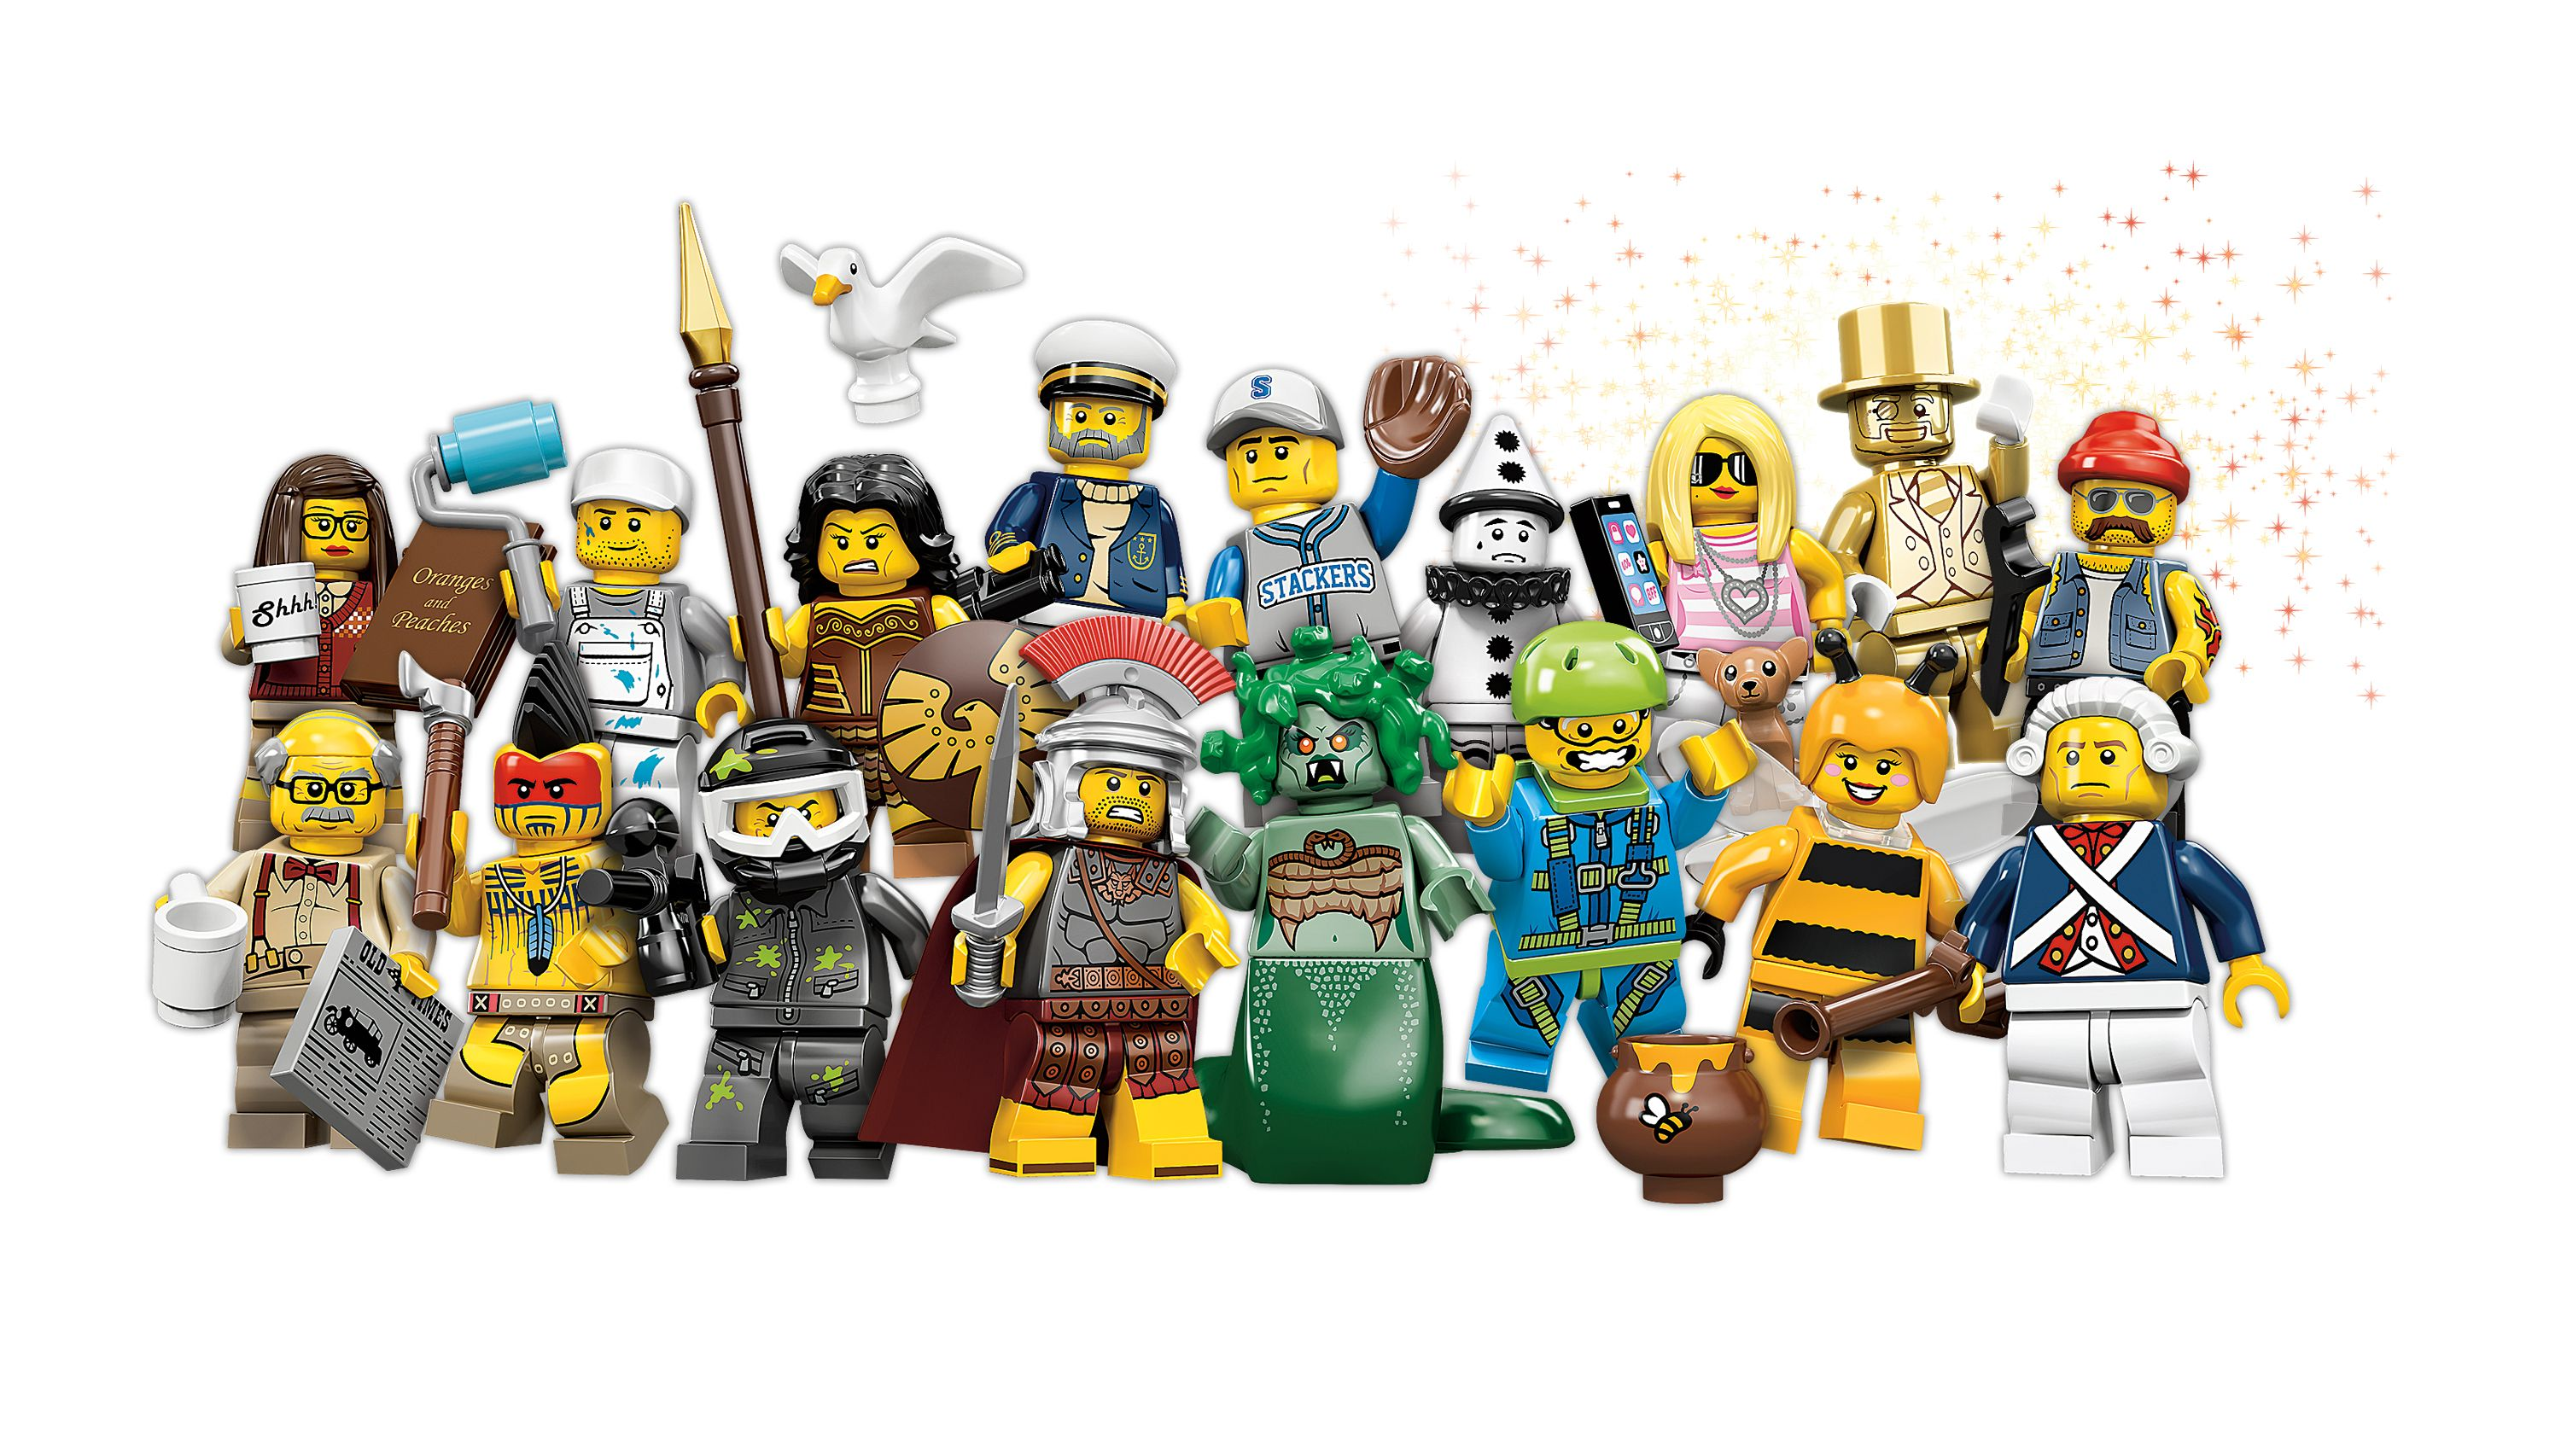 http://toysnbricks.com/wp-content/uploads/2013/02/LEGO-Series-10-Minifigures-71001-High-Resolution.jpg